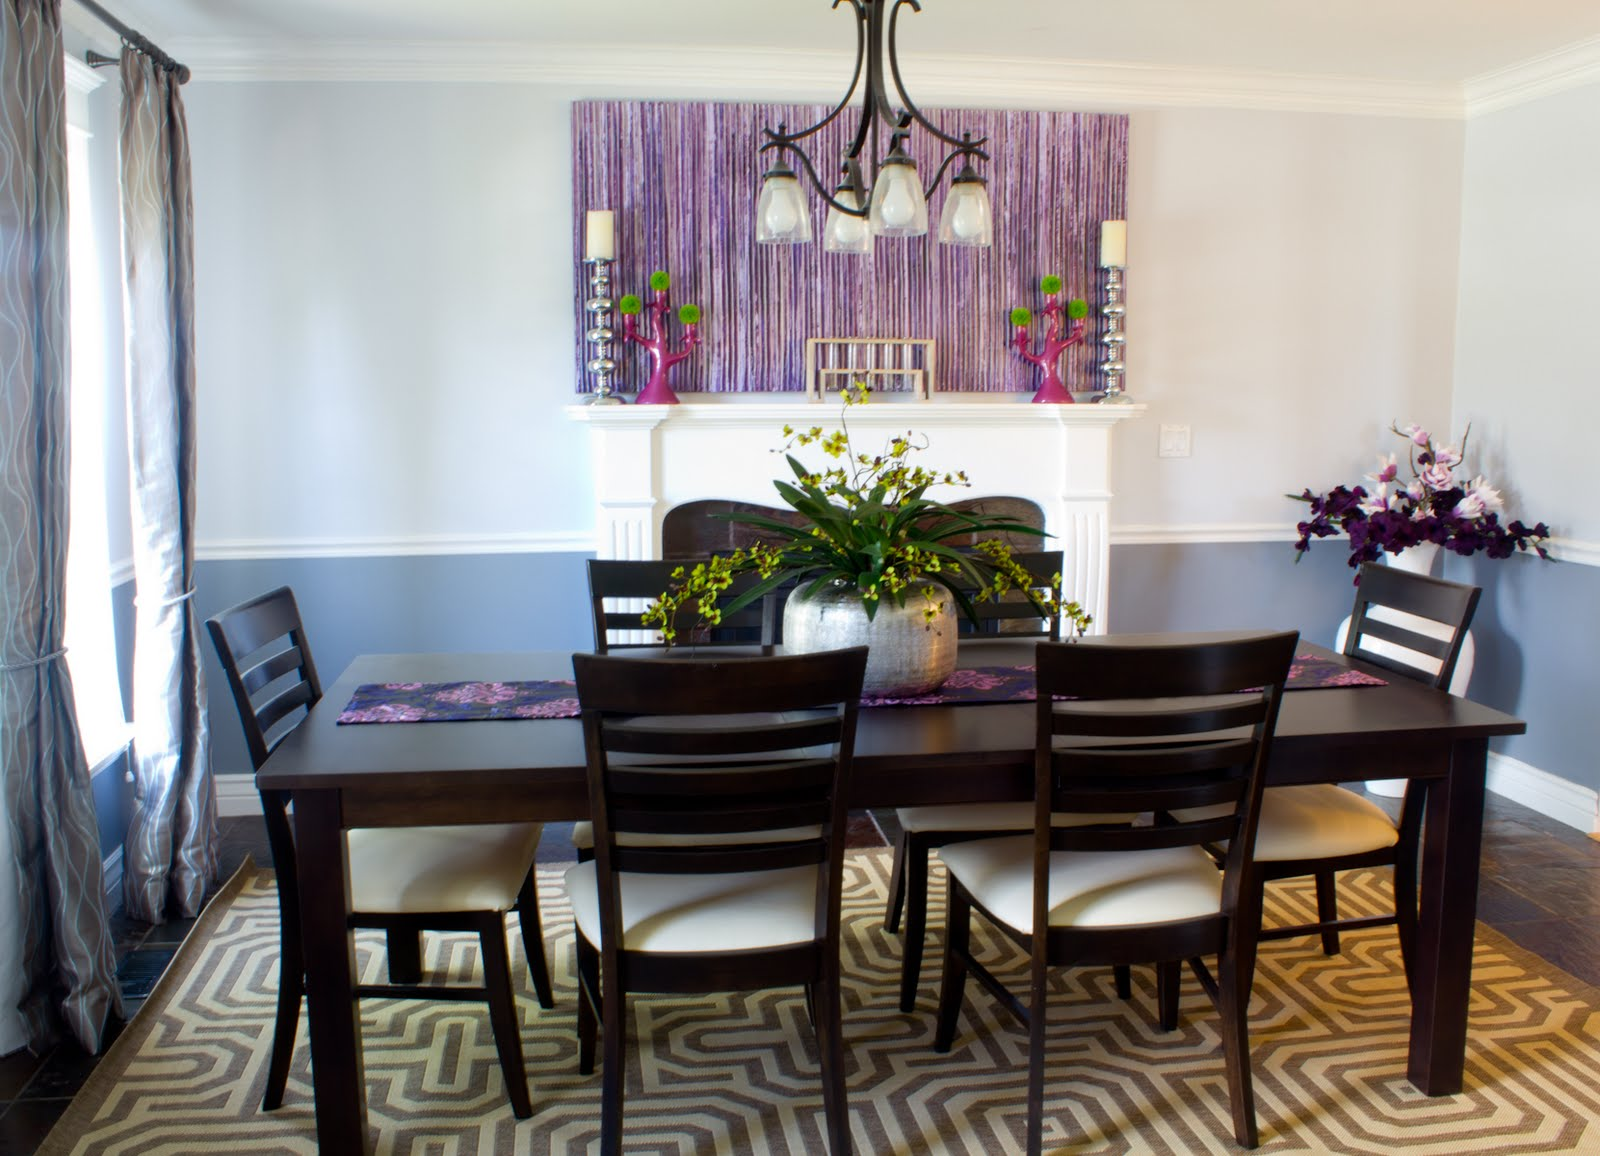 The Design House Interior Design: A Pleasantly Purple Dining Room